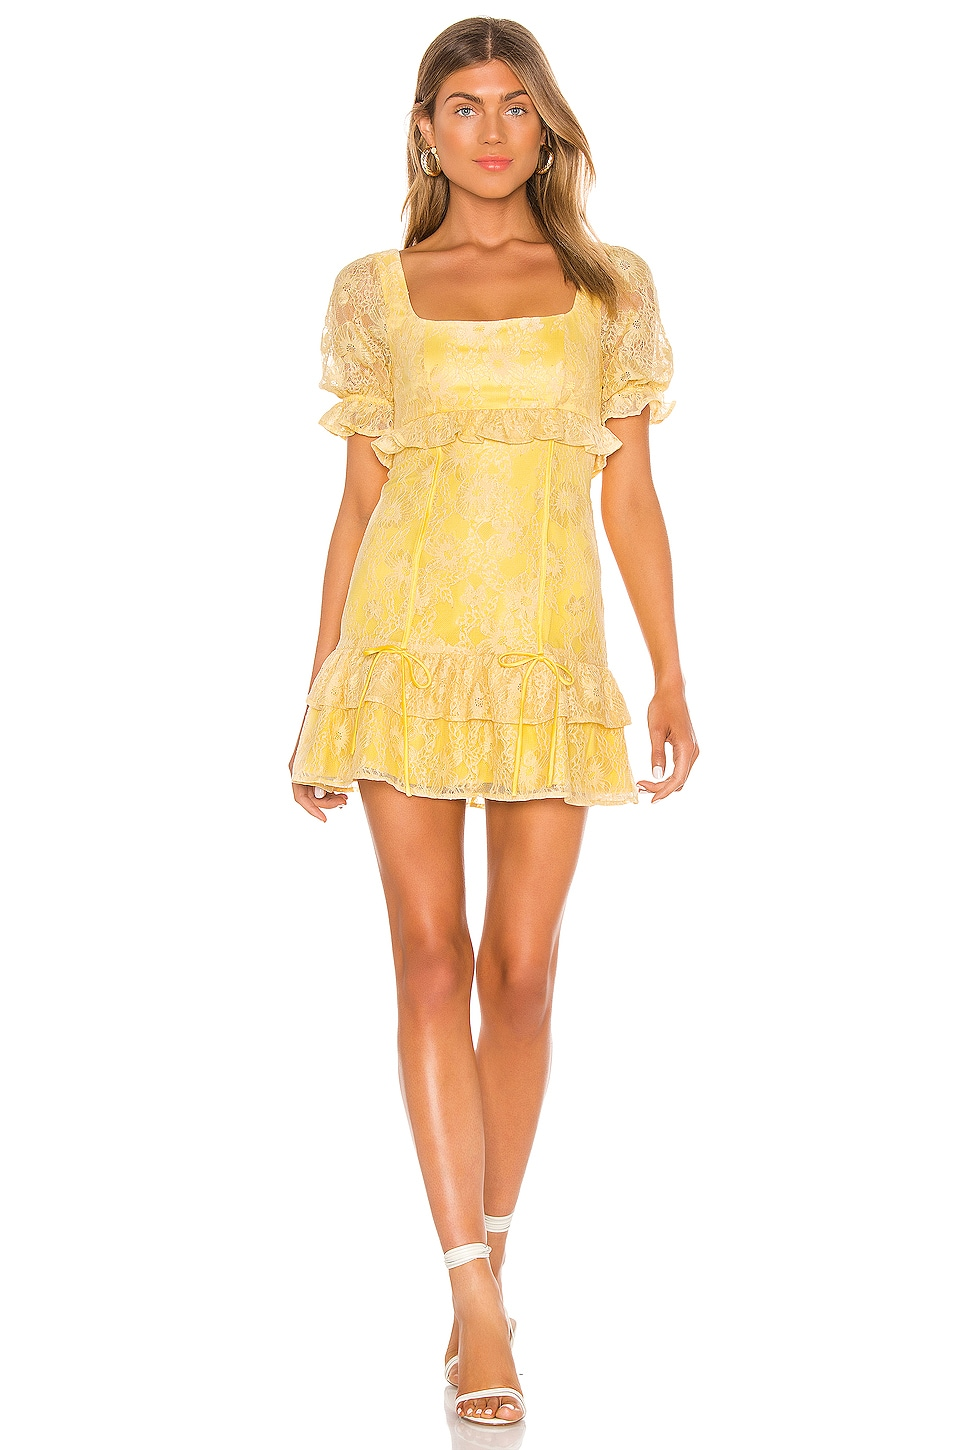 MAJORELLE Camille Mini Dress in Pale Yellow